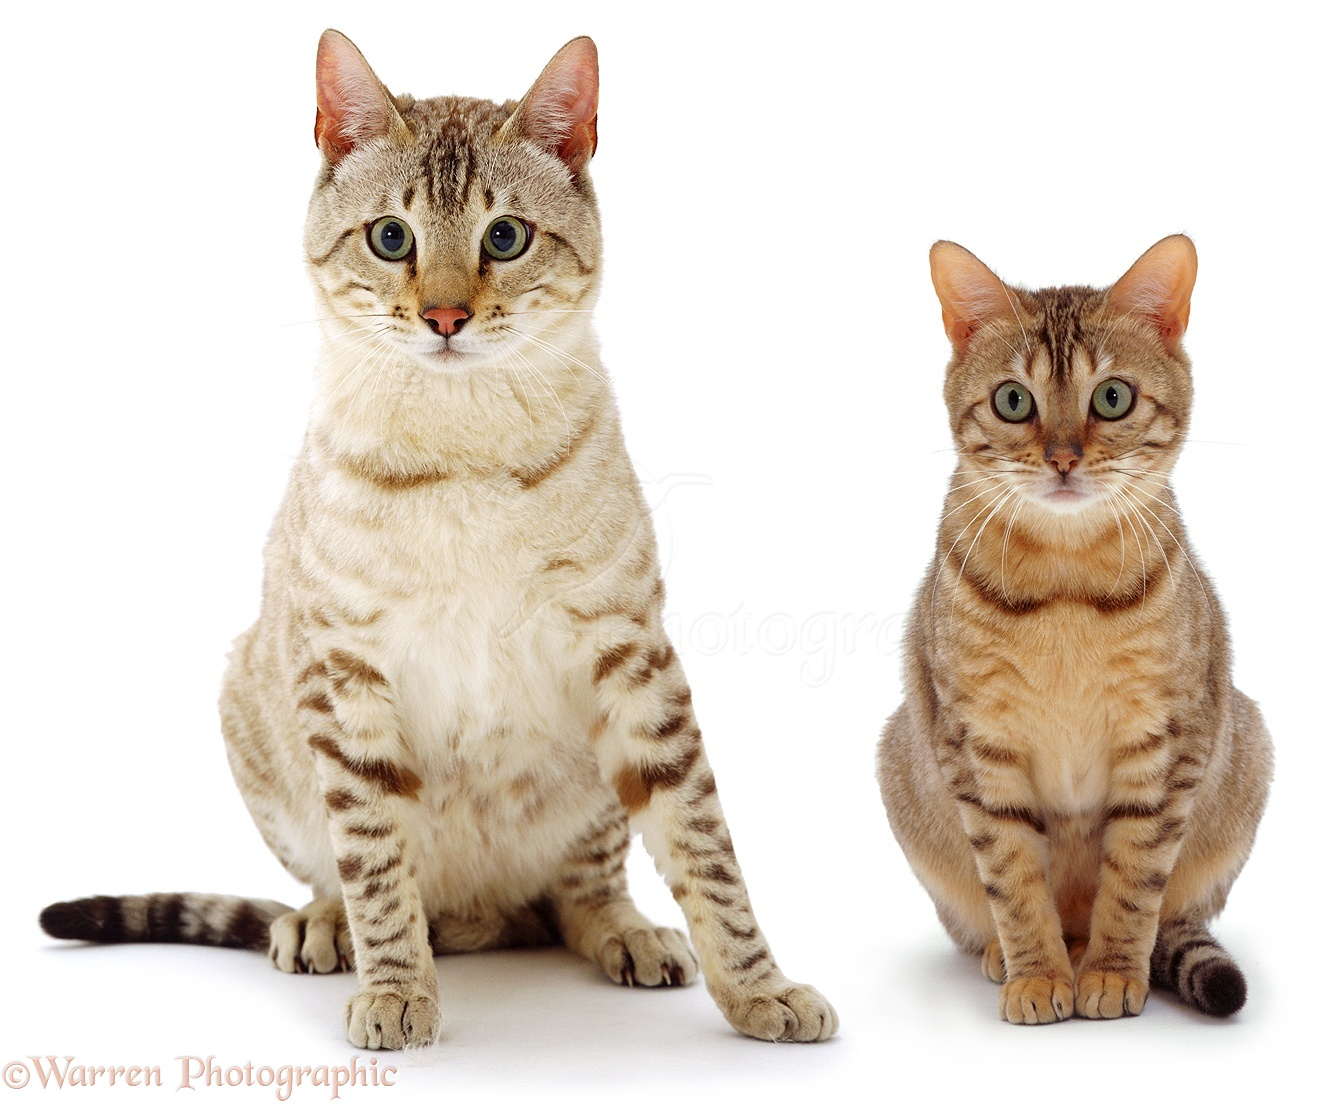 ... Bengal male cat, Tagor , and Brown spotted Bengal female cat, Indra